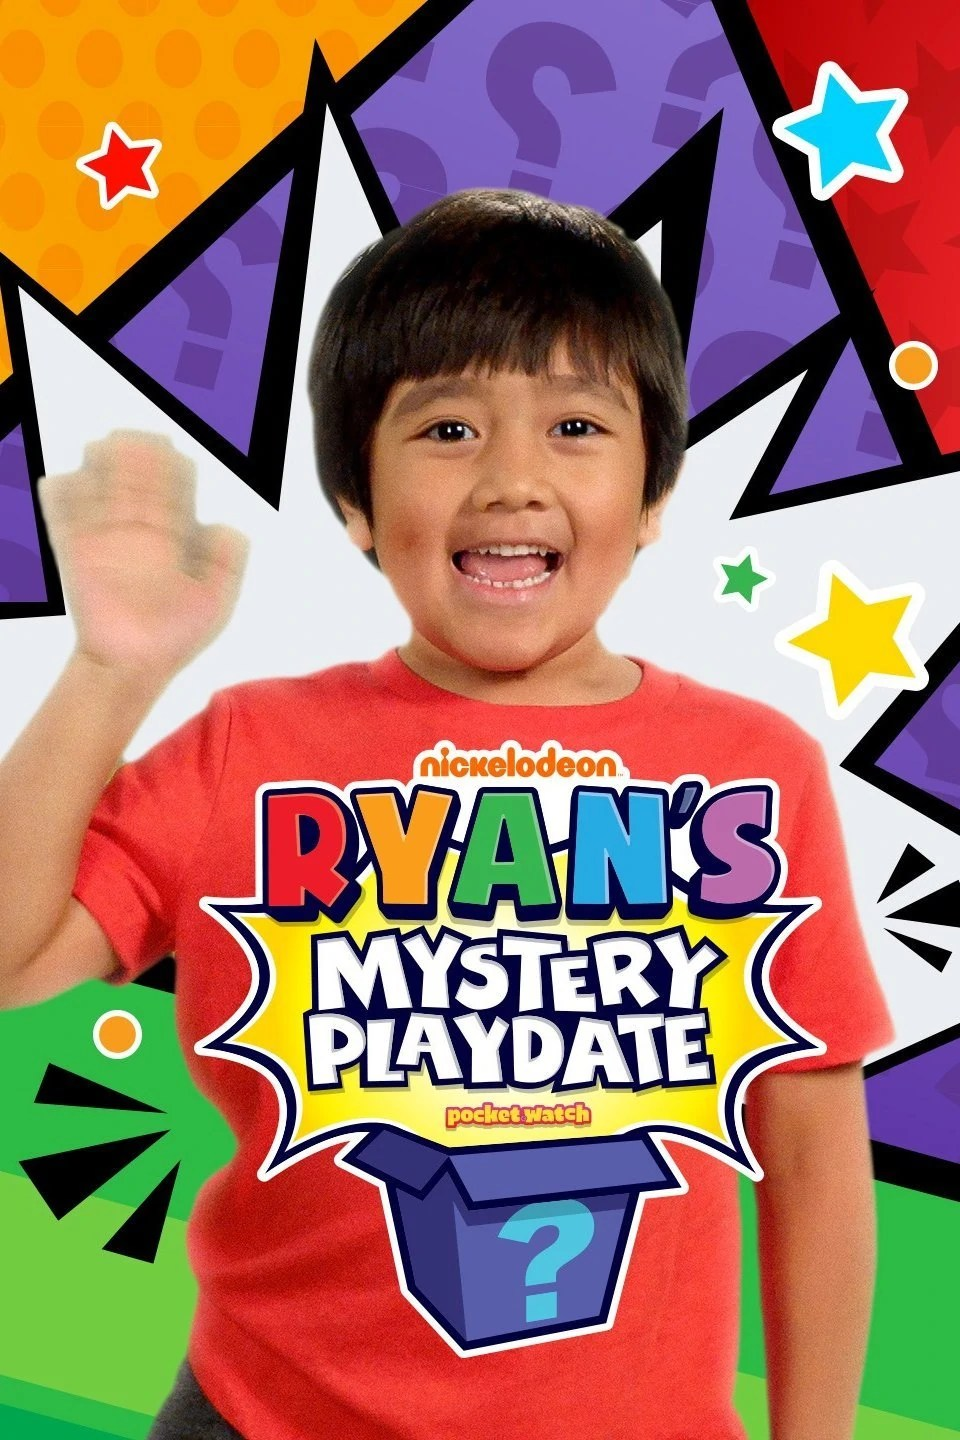 Ryan's Mystery : ryan's, mystery, Ryan's, Mystery, Playdate, Soundeffects, Fandom